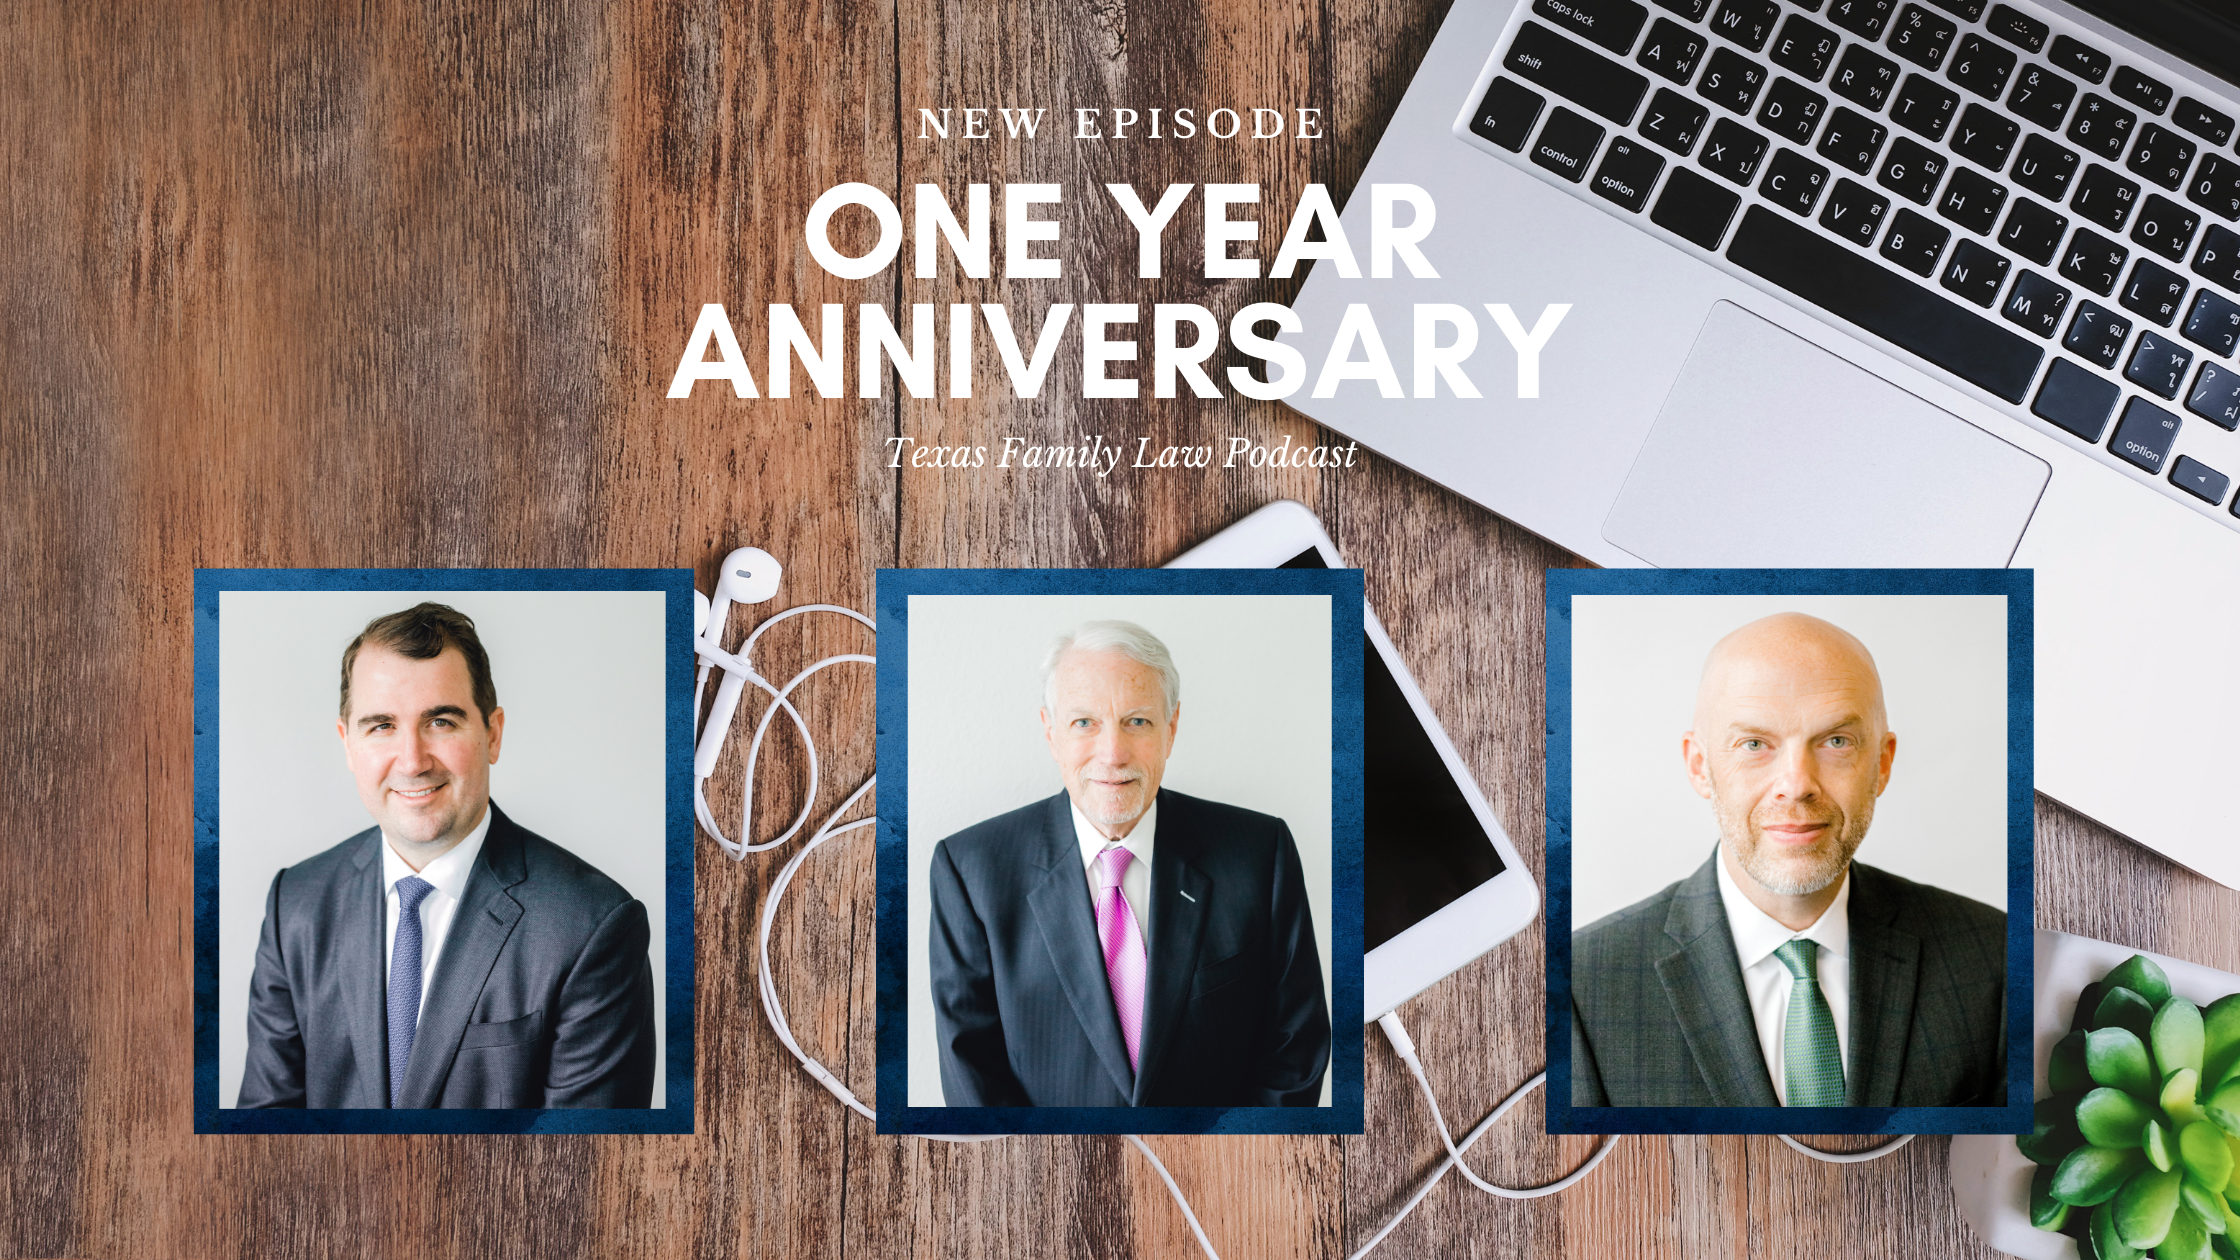 The Texas Family Law Podcast: One-Year Anniversary